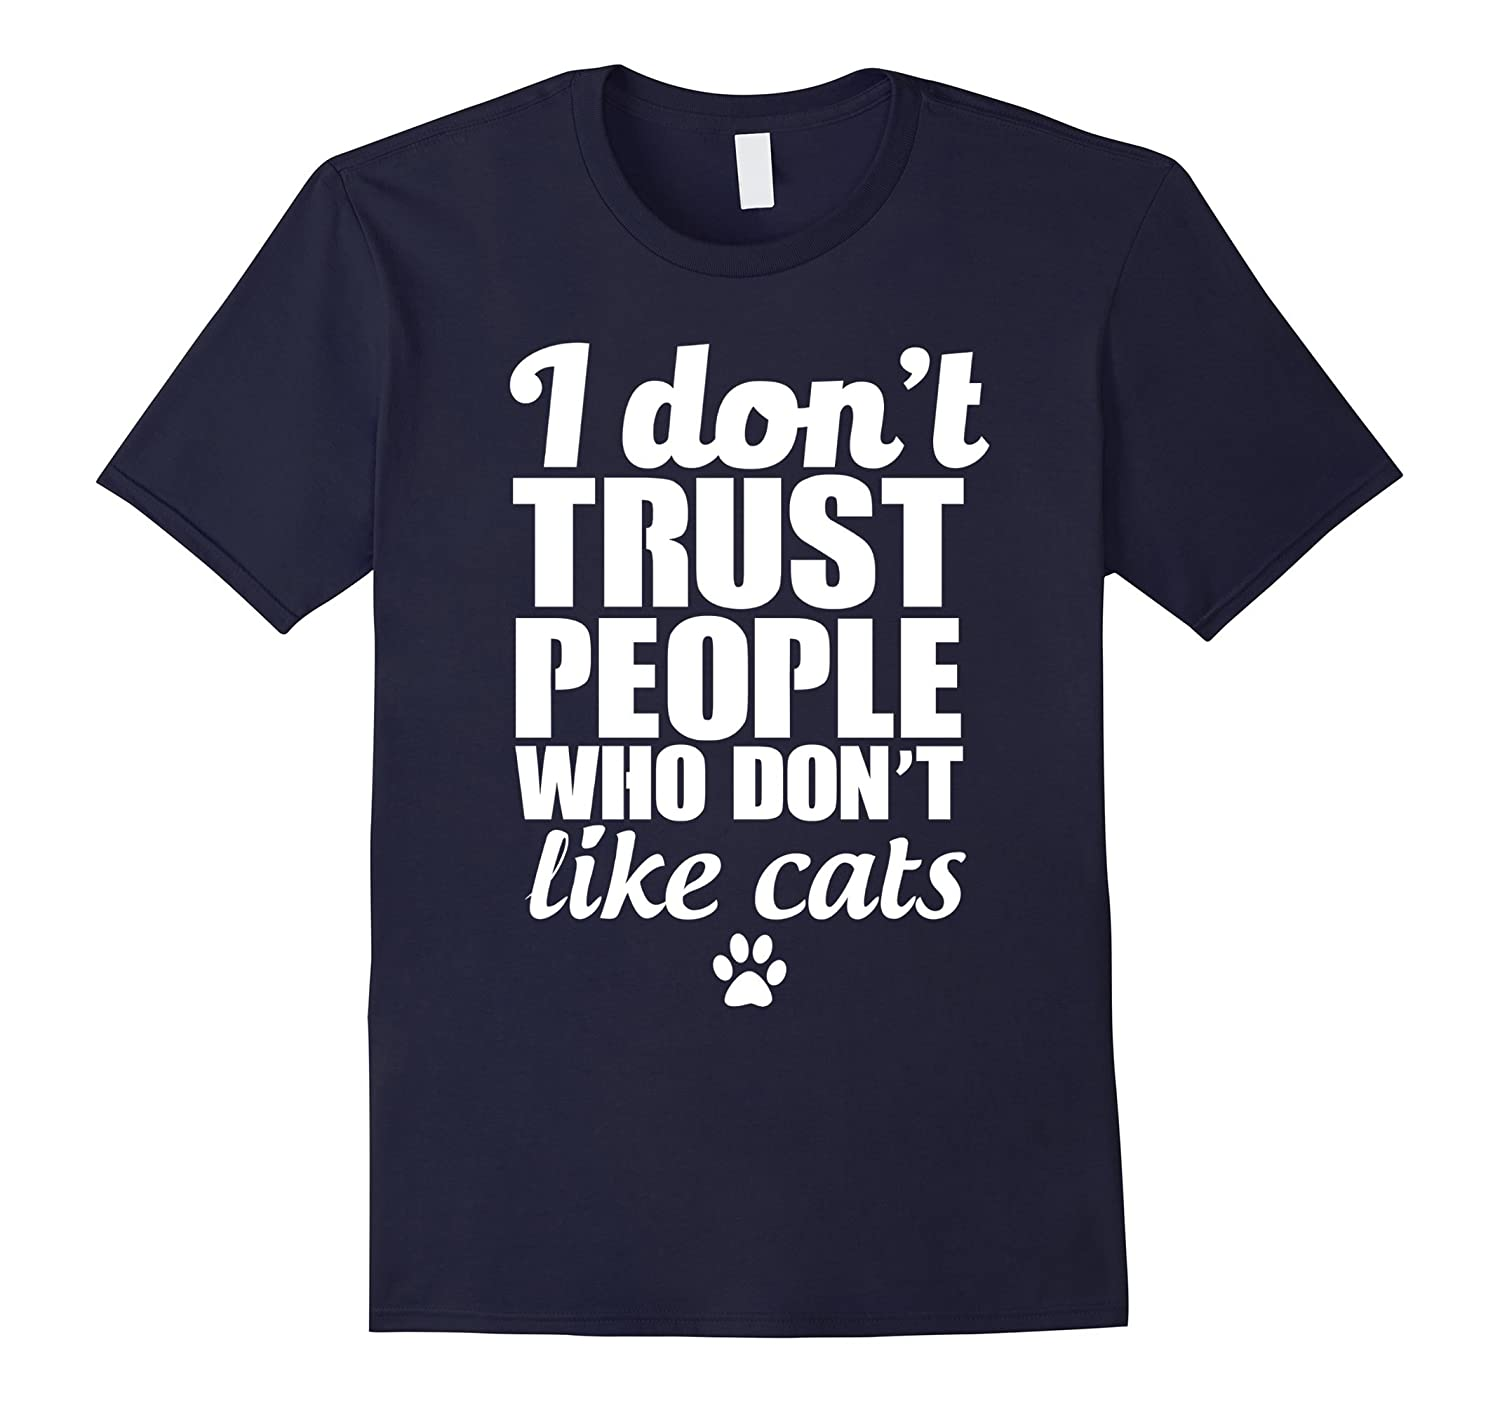 I Don't Trust People Who Don't Like Cats - Funny T-Shirt-CL